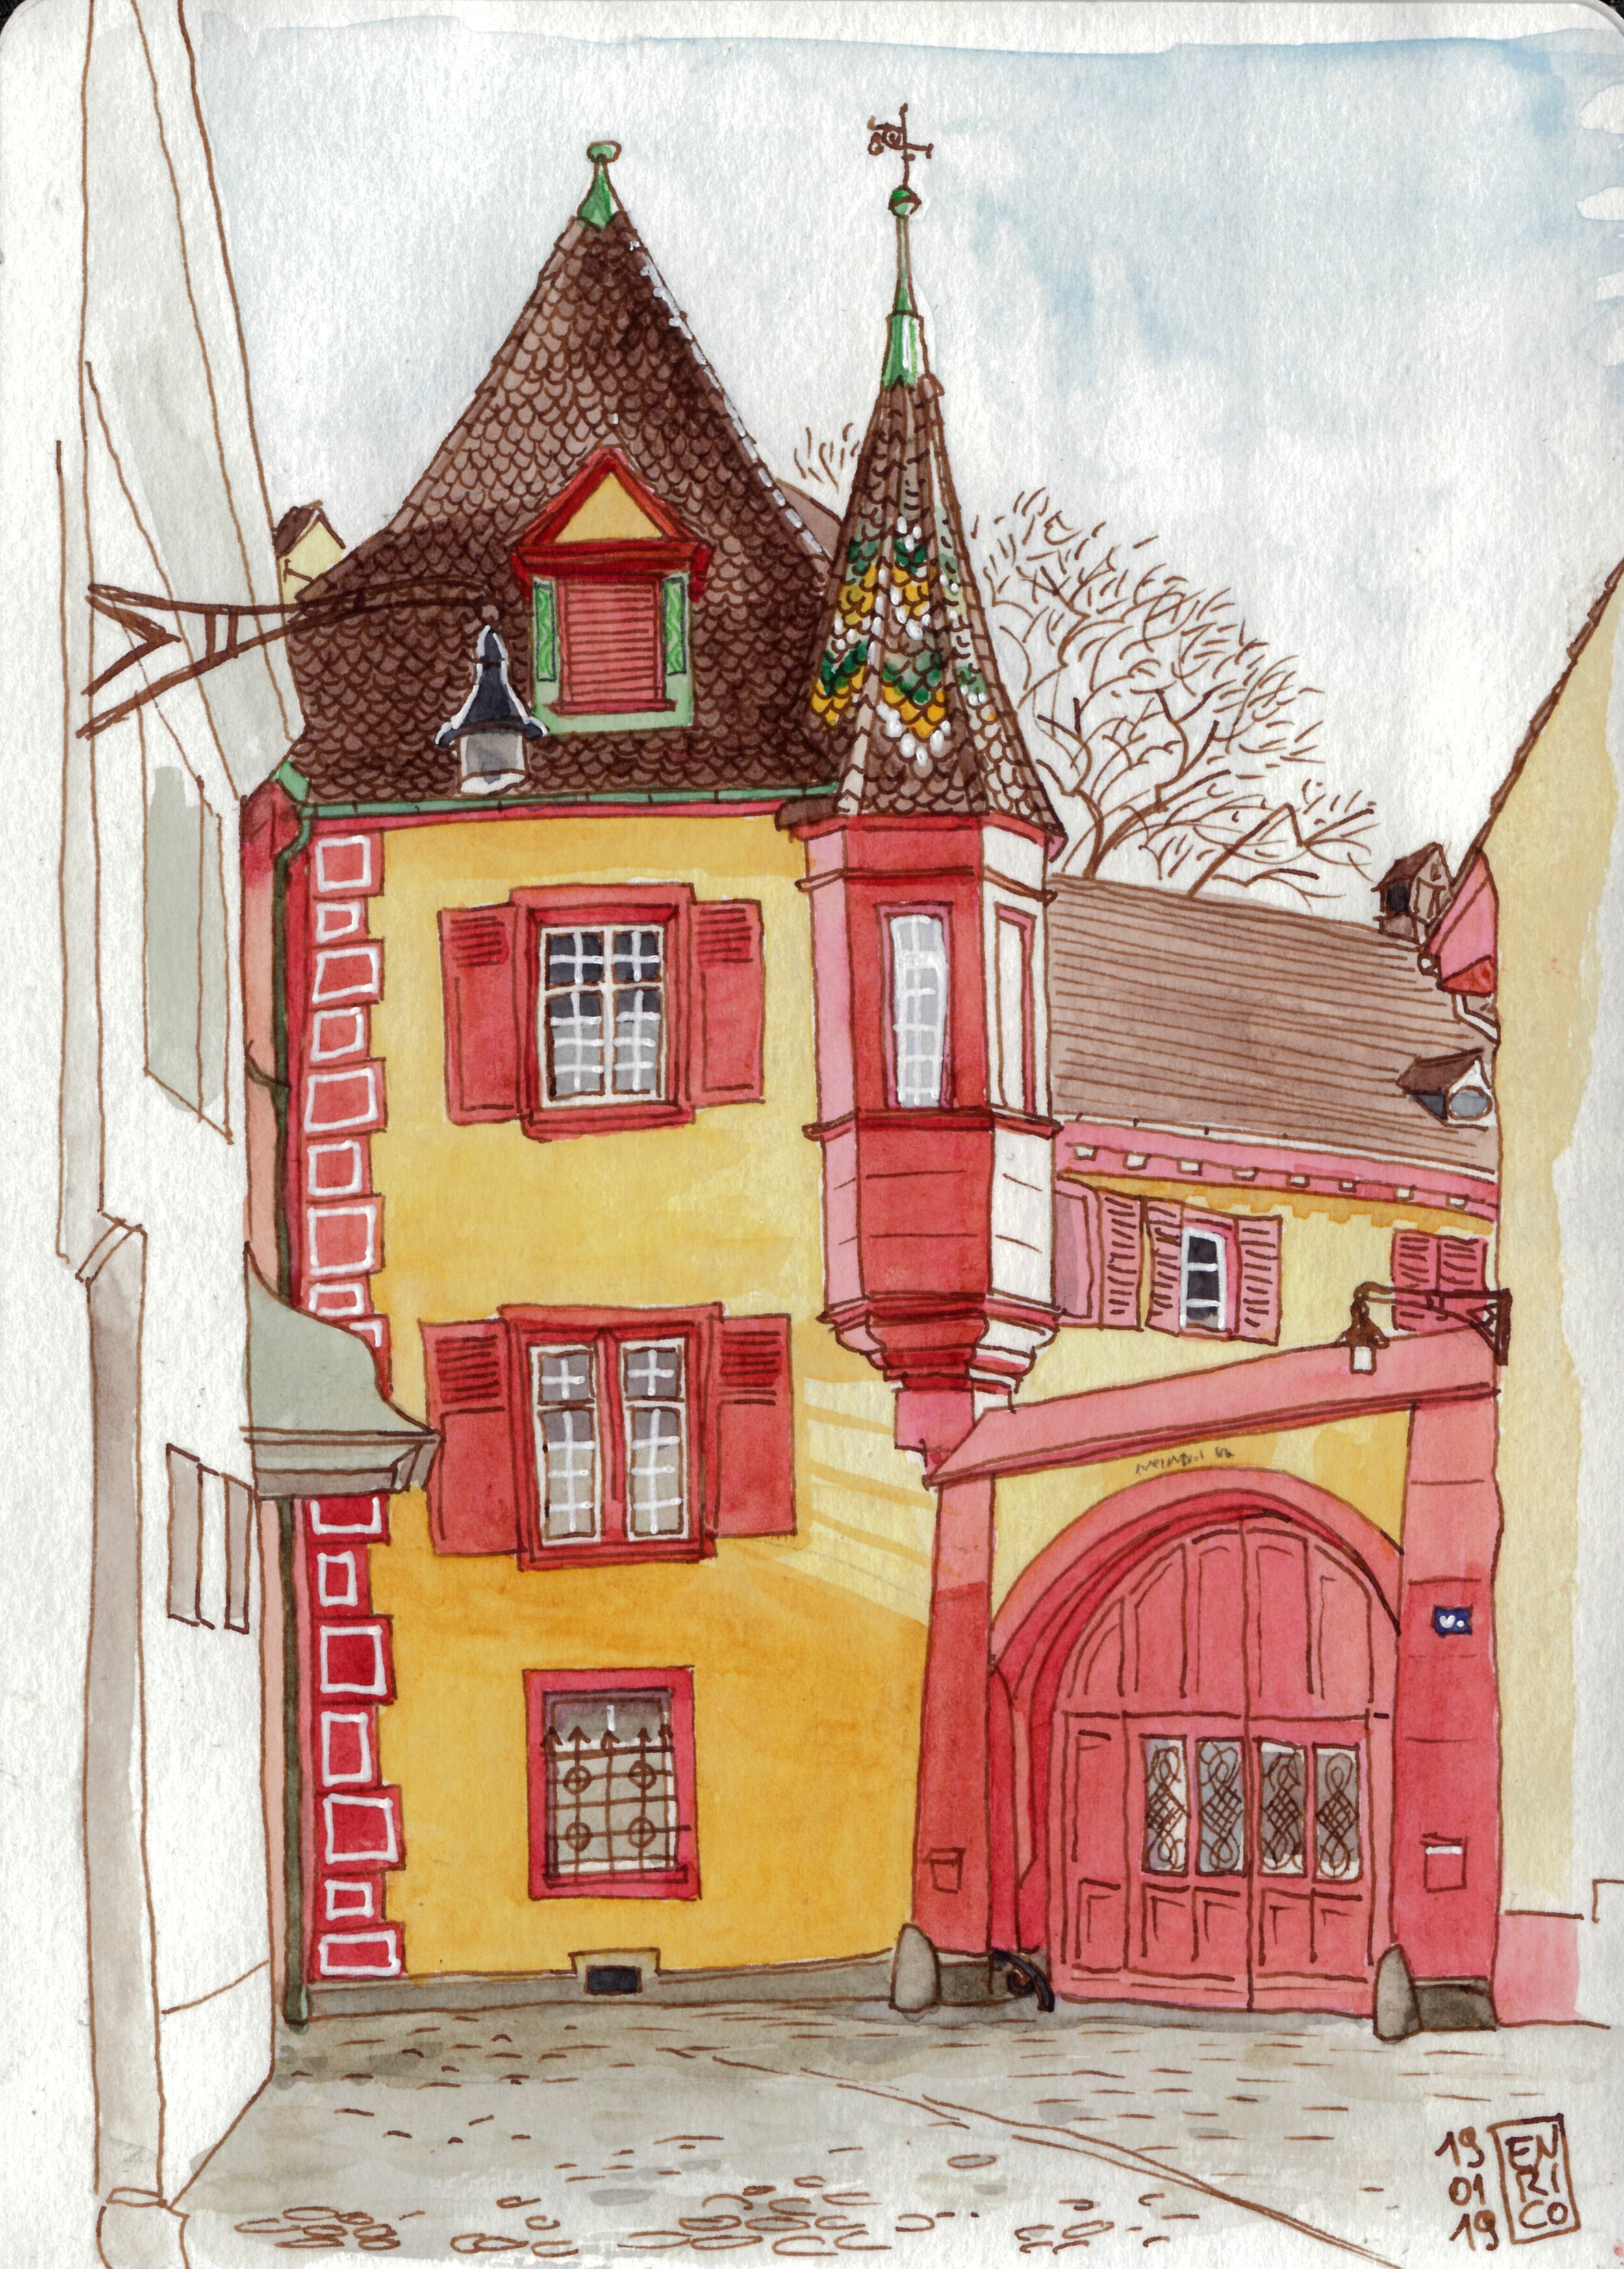 A not-so-visible halley in Grossbasel, close to Münsterplatz. Sketched it while waiting for the Münster to open.